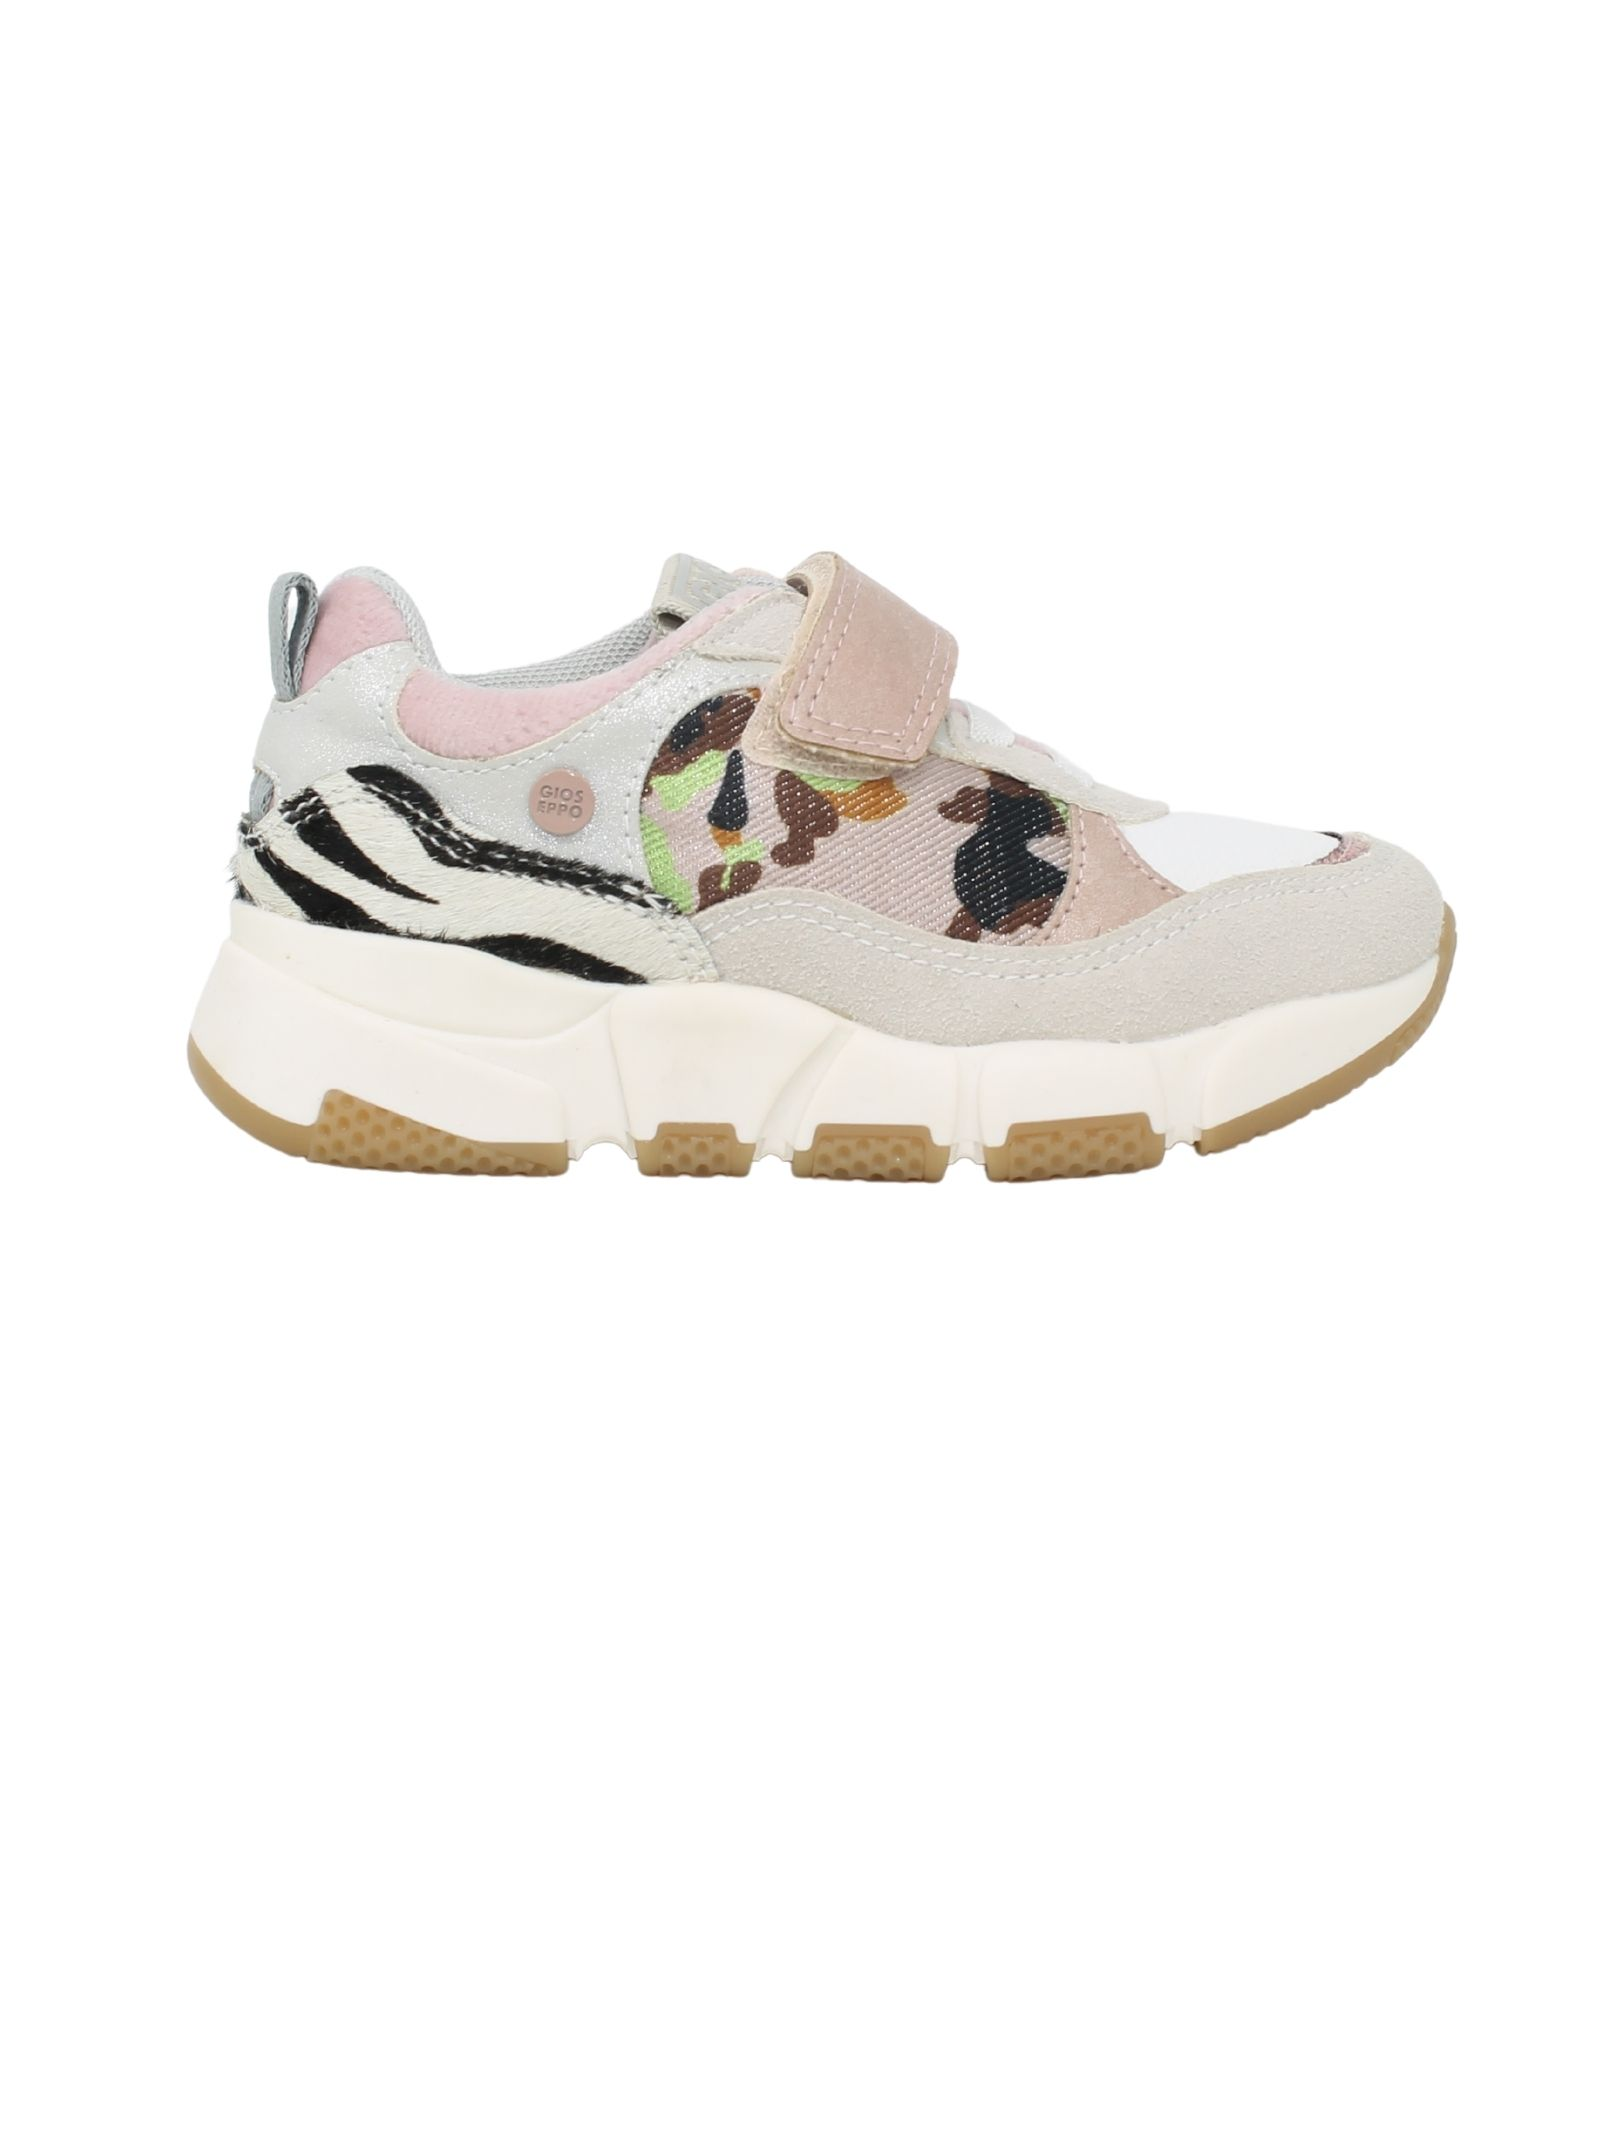 Habburg Sneakers for Girls GIOSEPPO KIDS | Sneakers | 64229CAMOUFLAGE